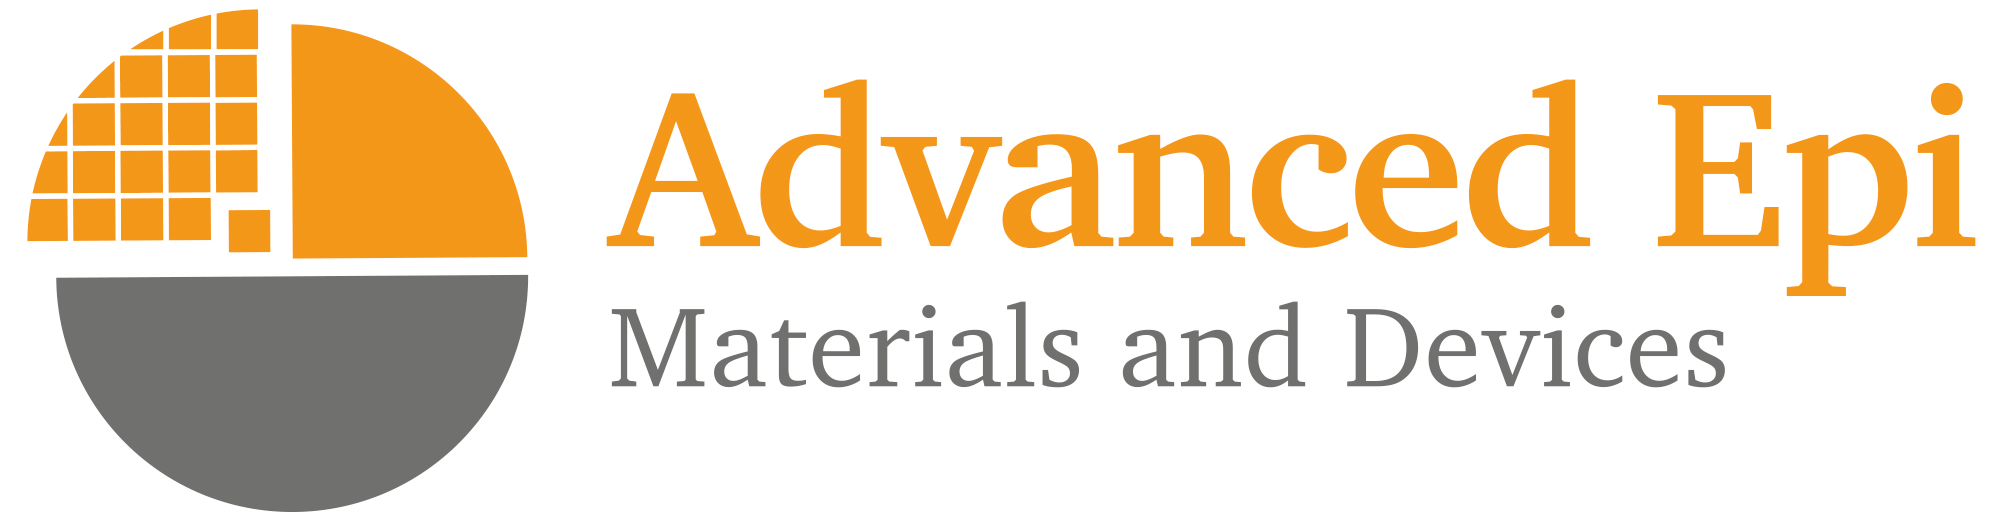 Advanced Epi Materials and Devices Ltd.